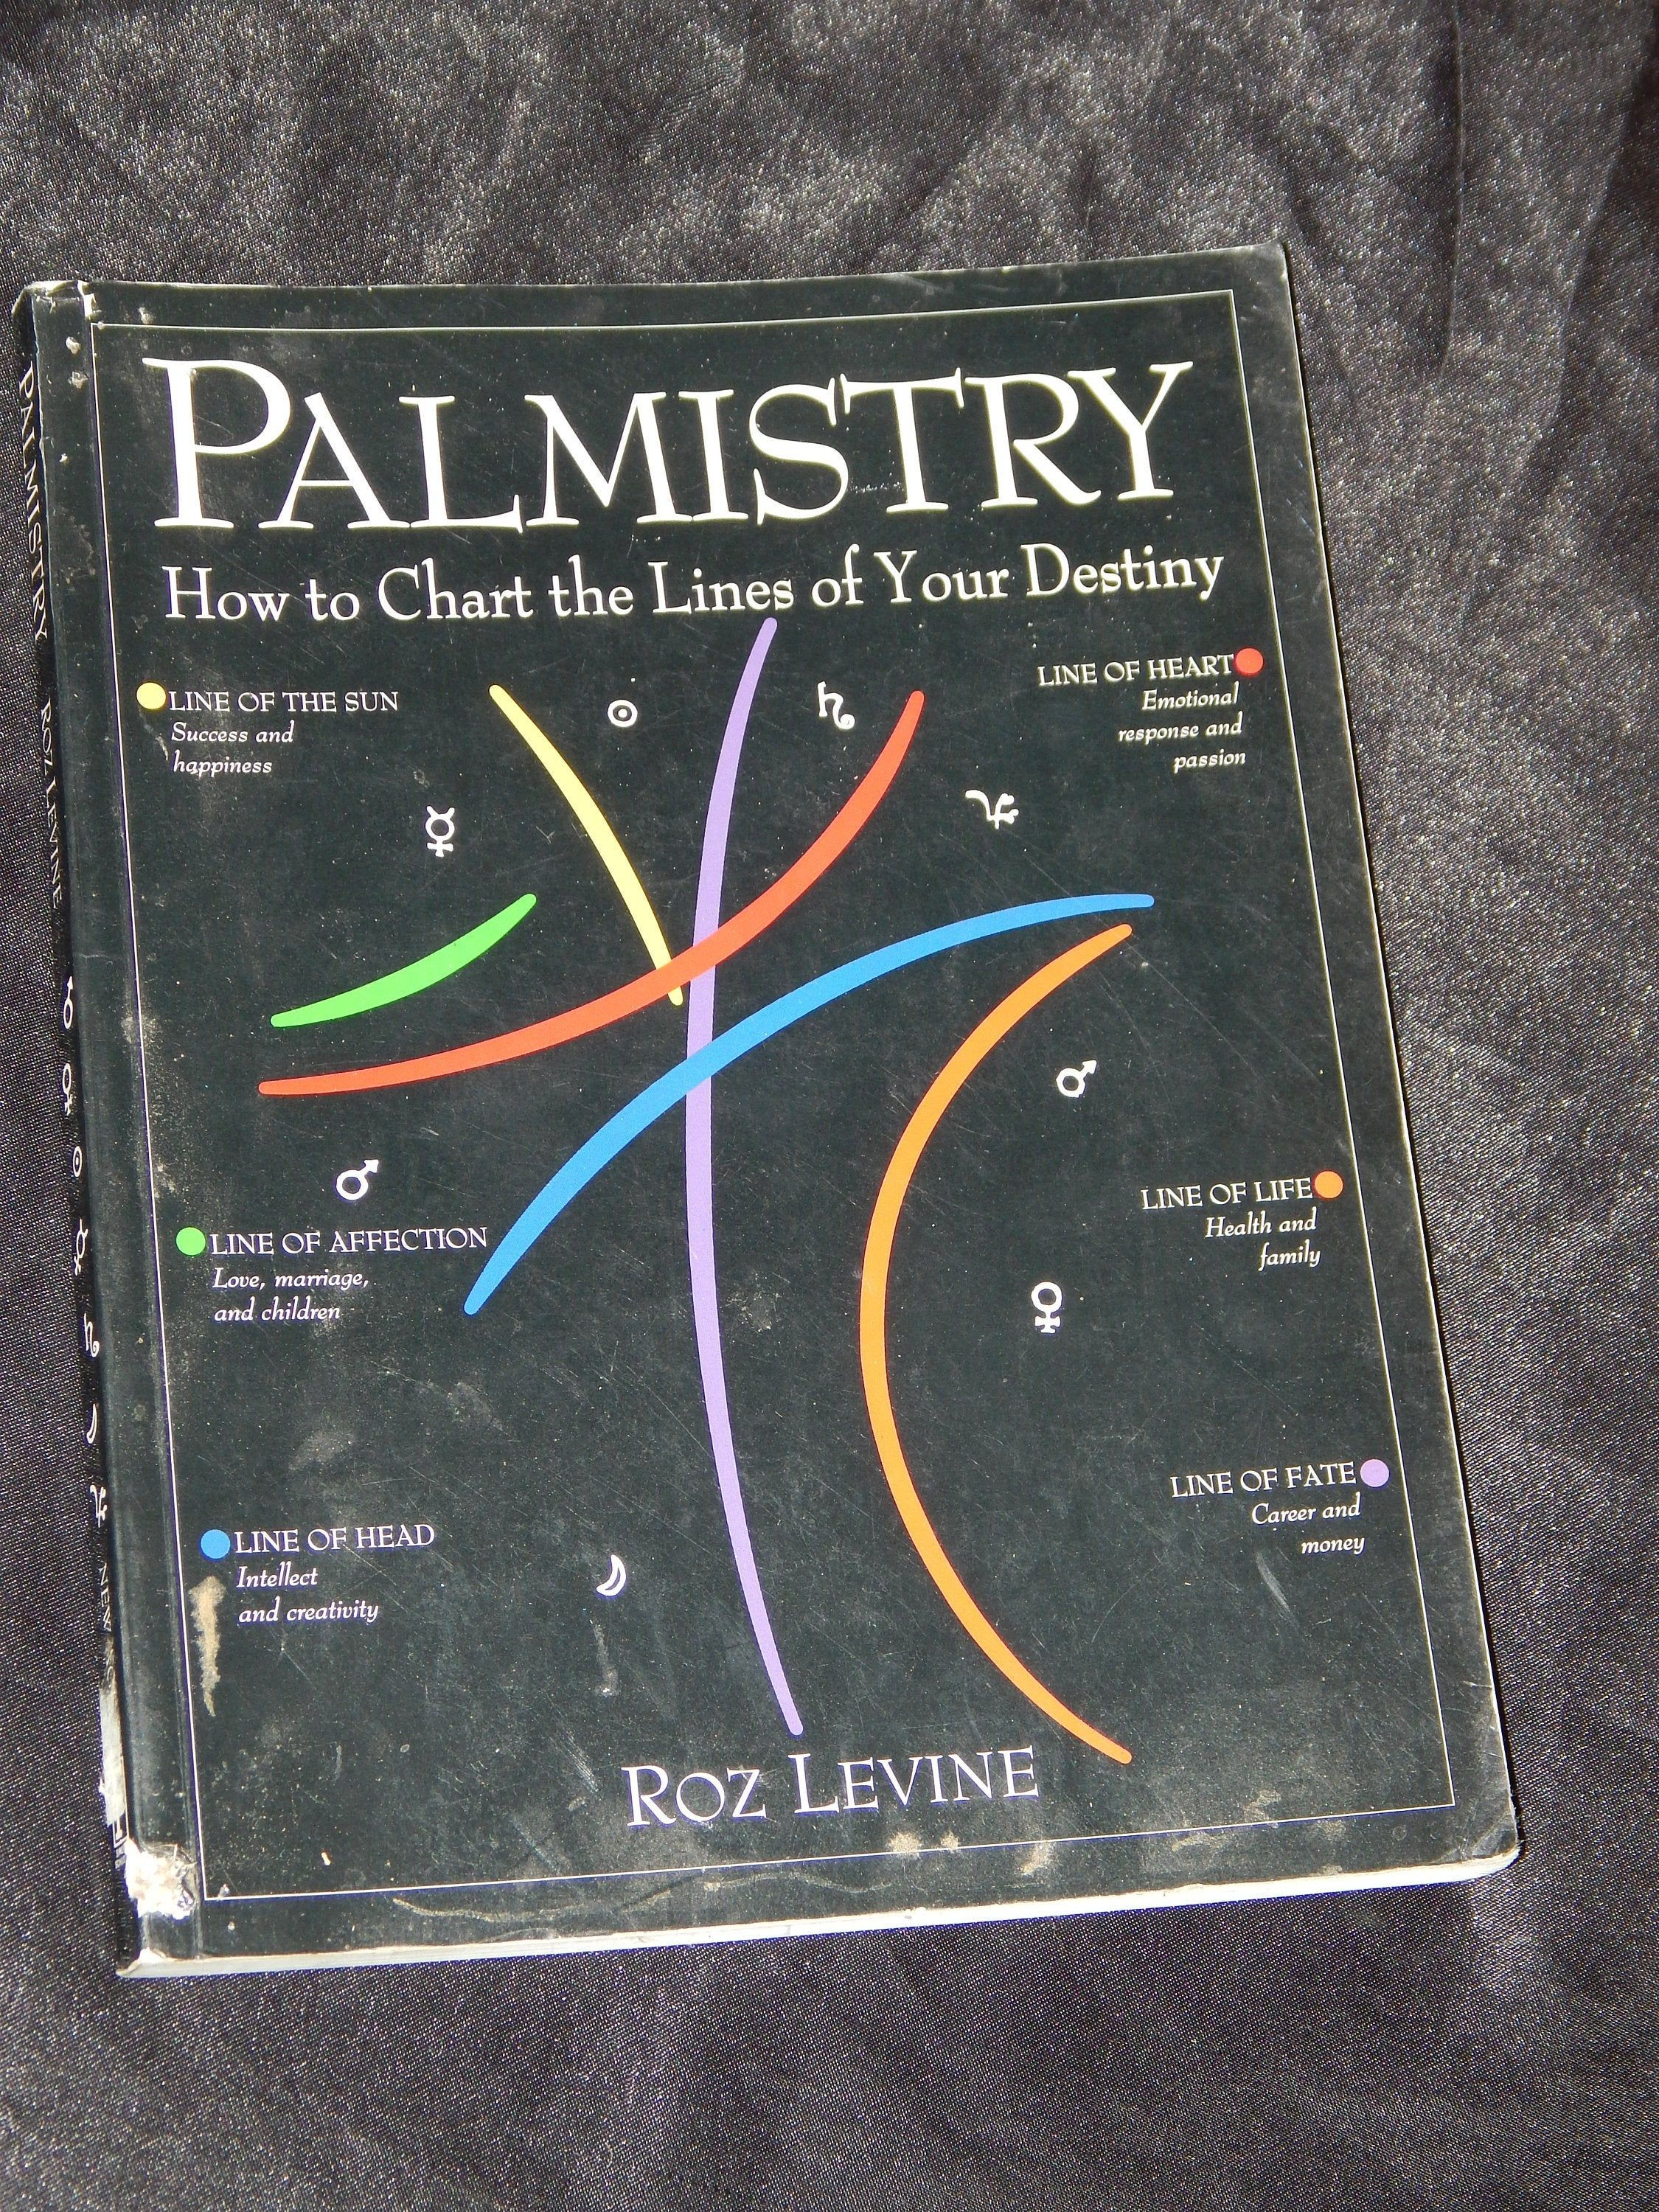 Palmistry How To Chart The Lines Of Your Destiny Used Books Etsy Occult Books Witchcraft Books Used Books